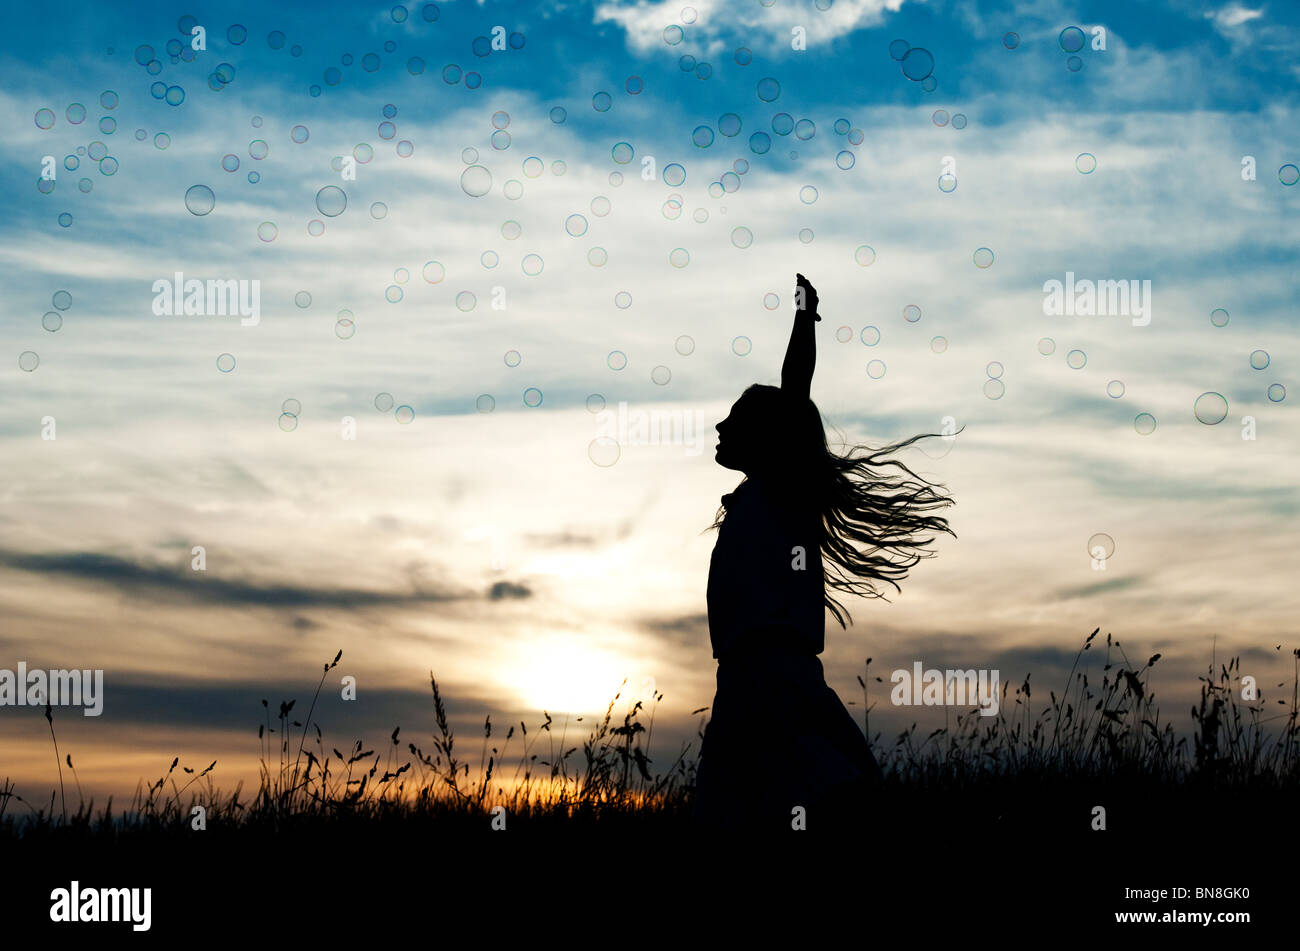 Young Girl energetically having fun jumping and catching bubbles at sunset. Silhouette Stock Photo